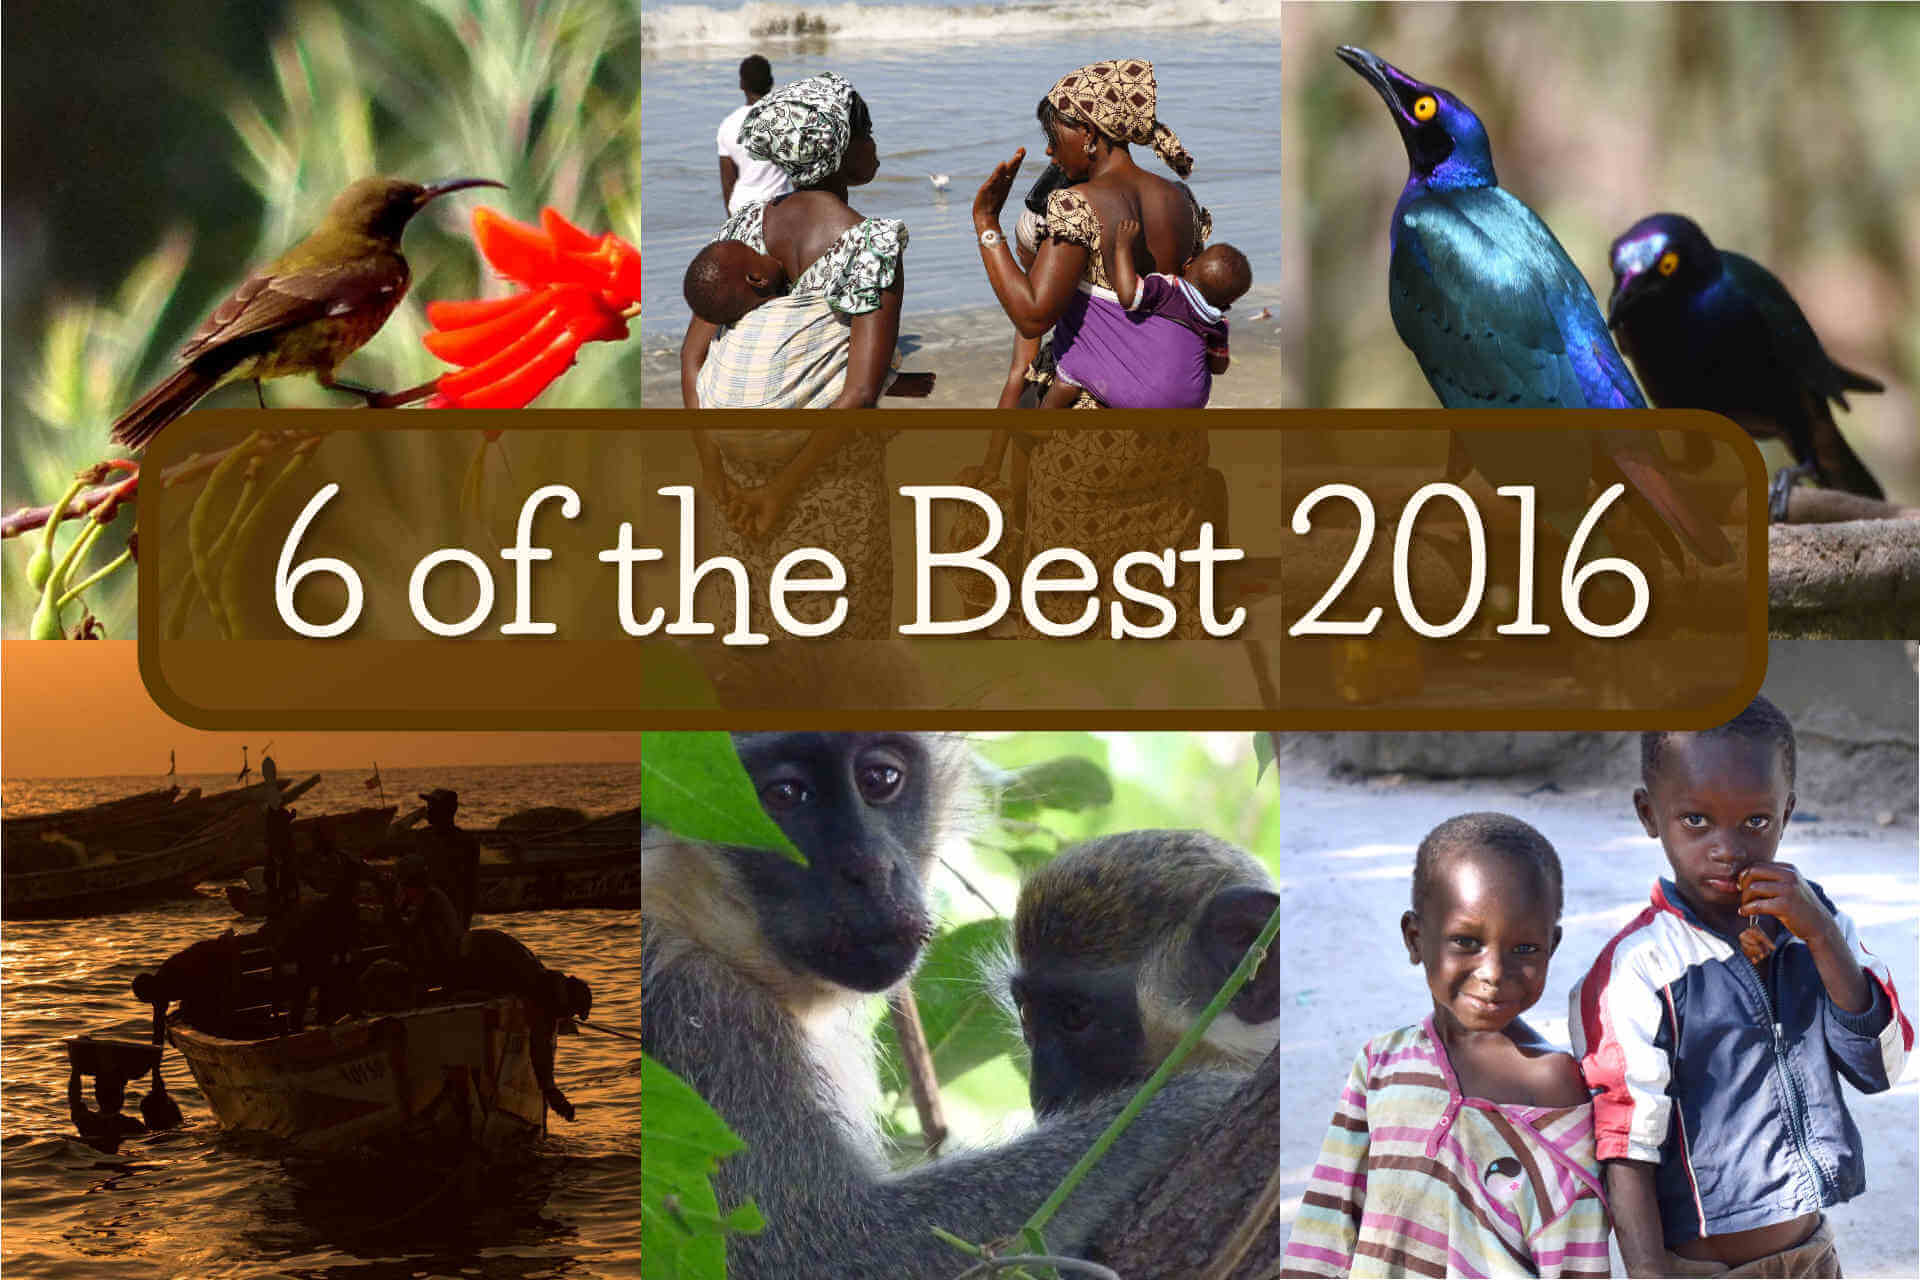 6 of the best Gambia photos 2016